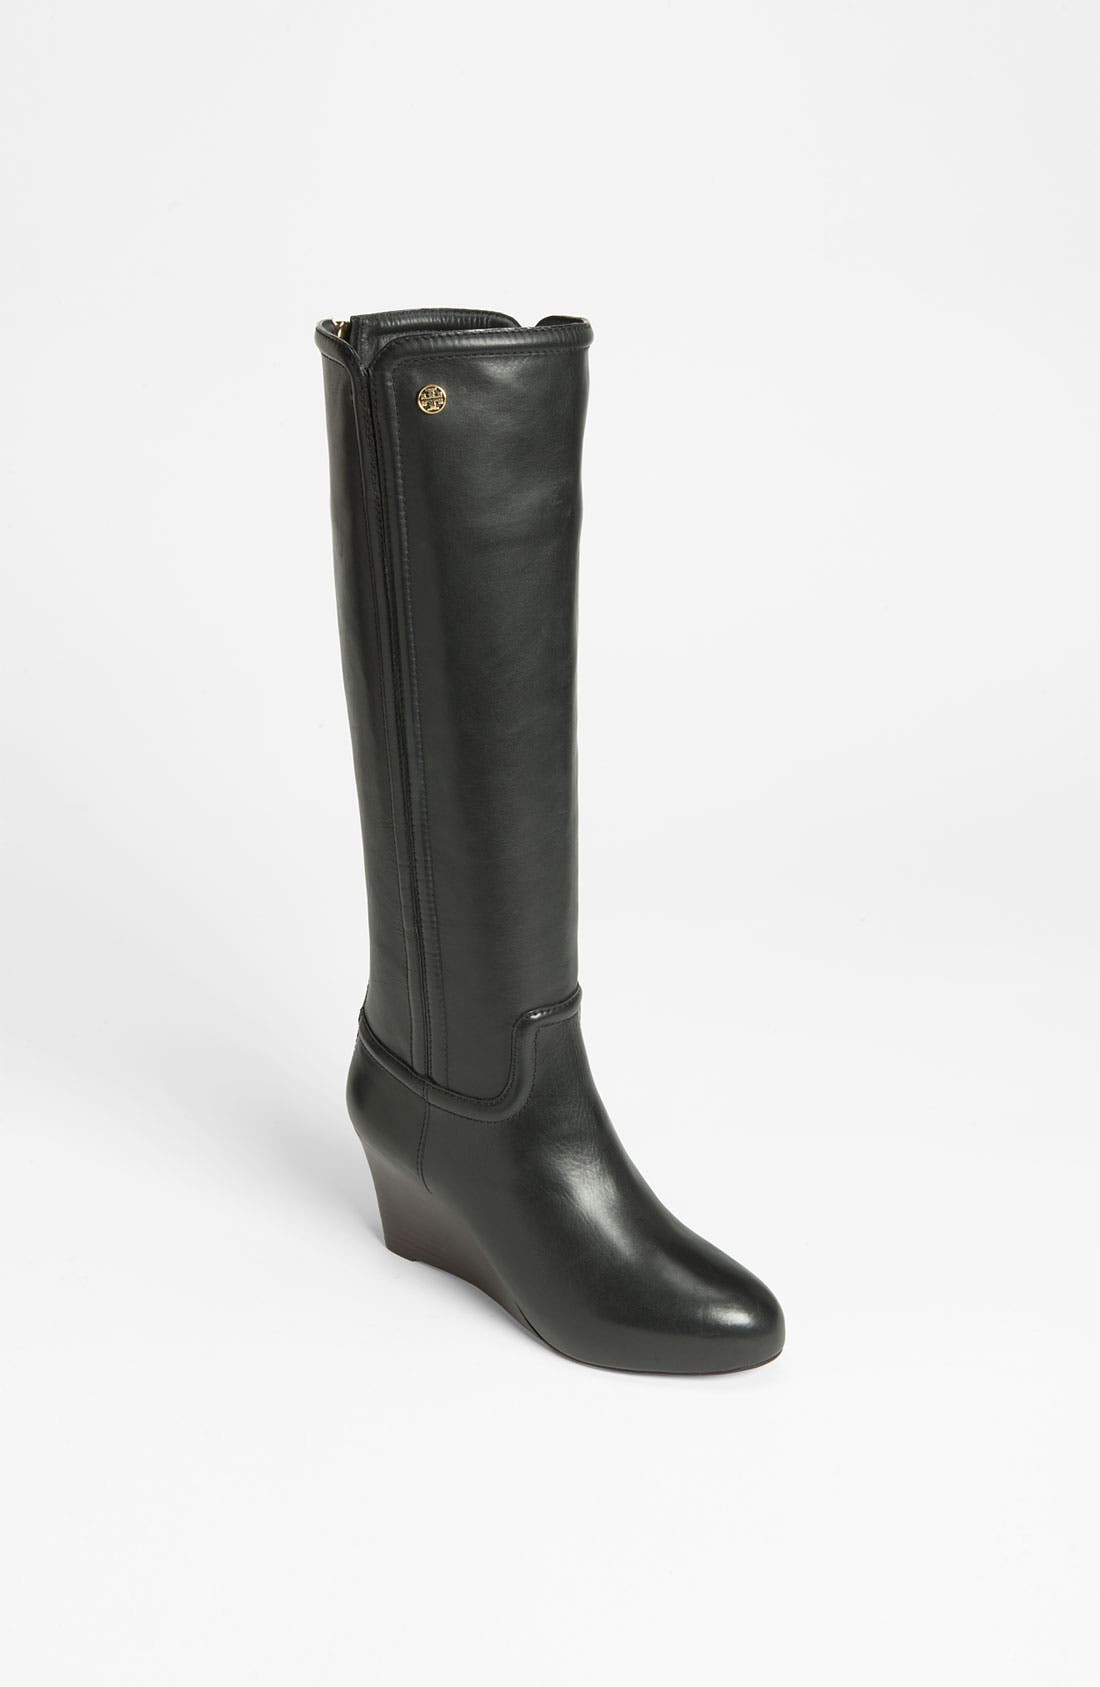 Main Image - Tory Burch 'Irene' Wedge Boot